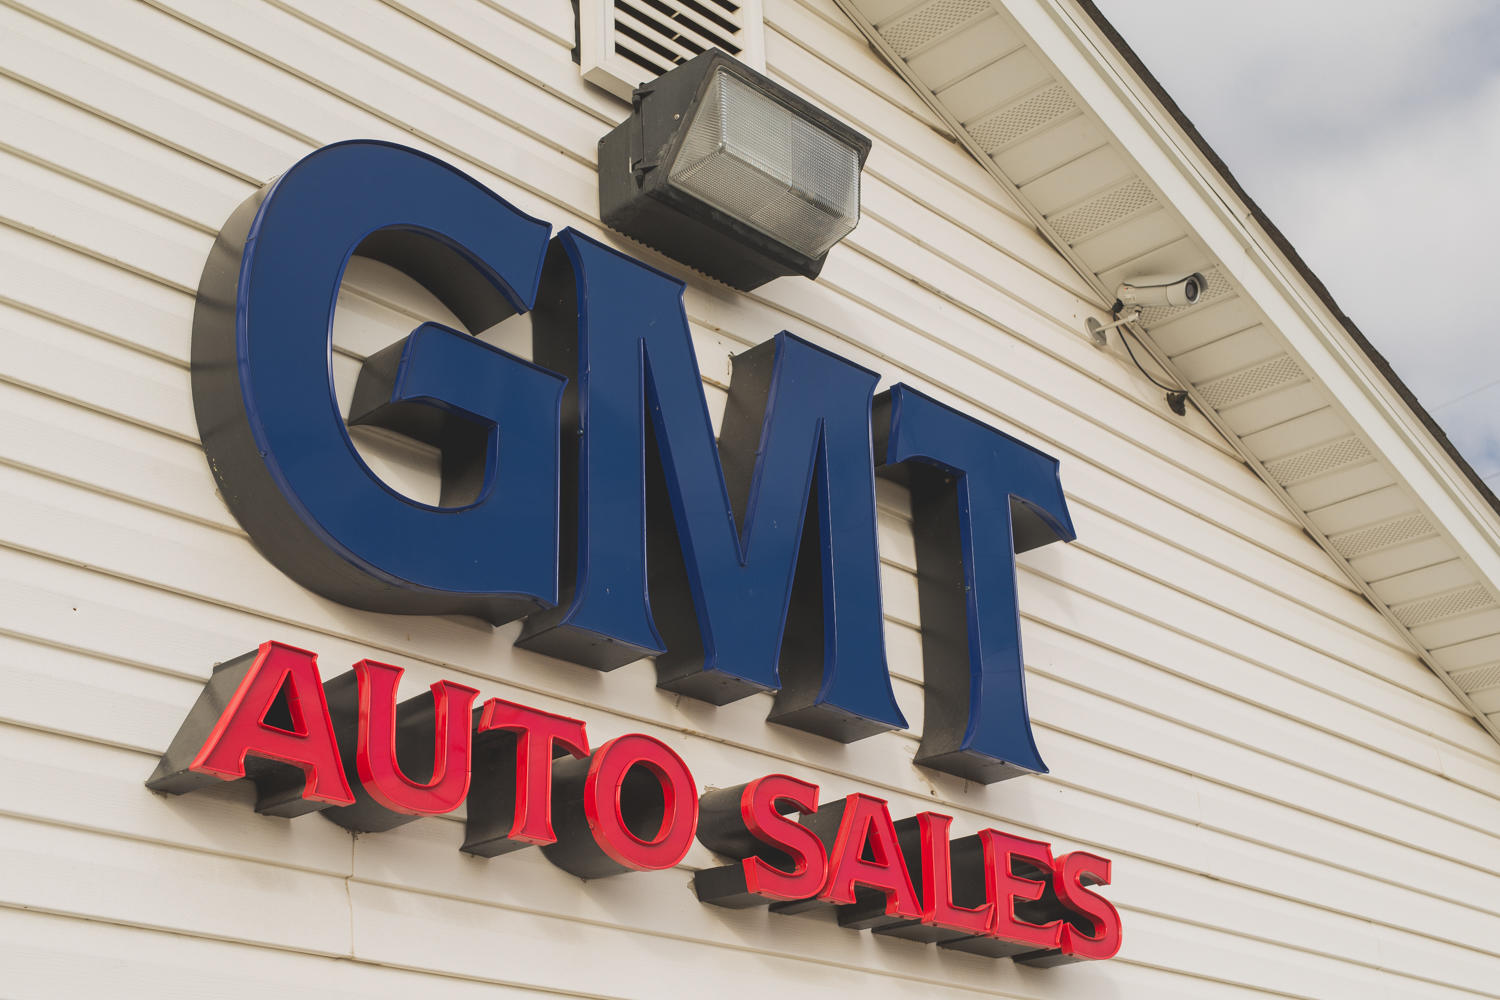 Gmt Auto Sales Ofallon Mo >> Travers GMT Auto Sales West, O'Fallon Missouri (MO) - LocalDatabase.com